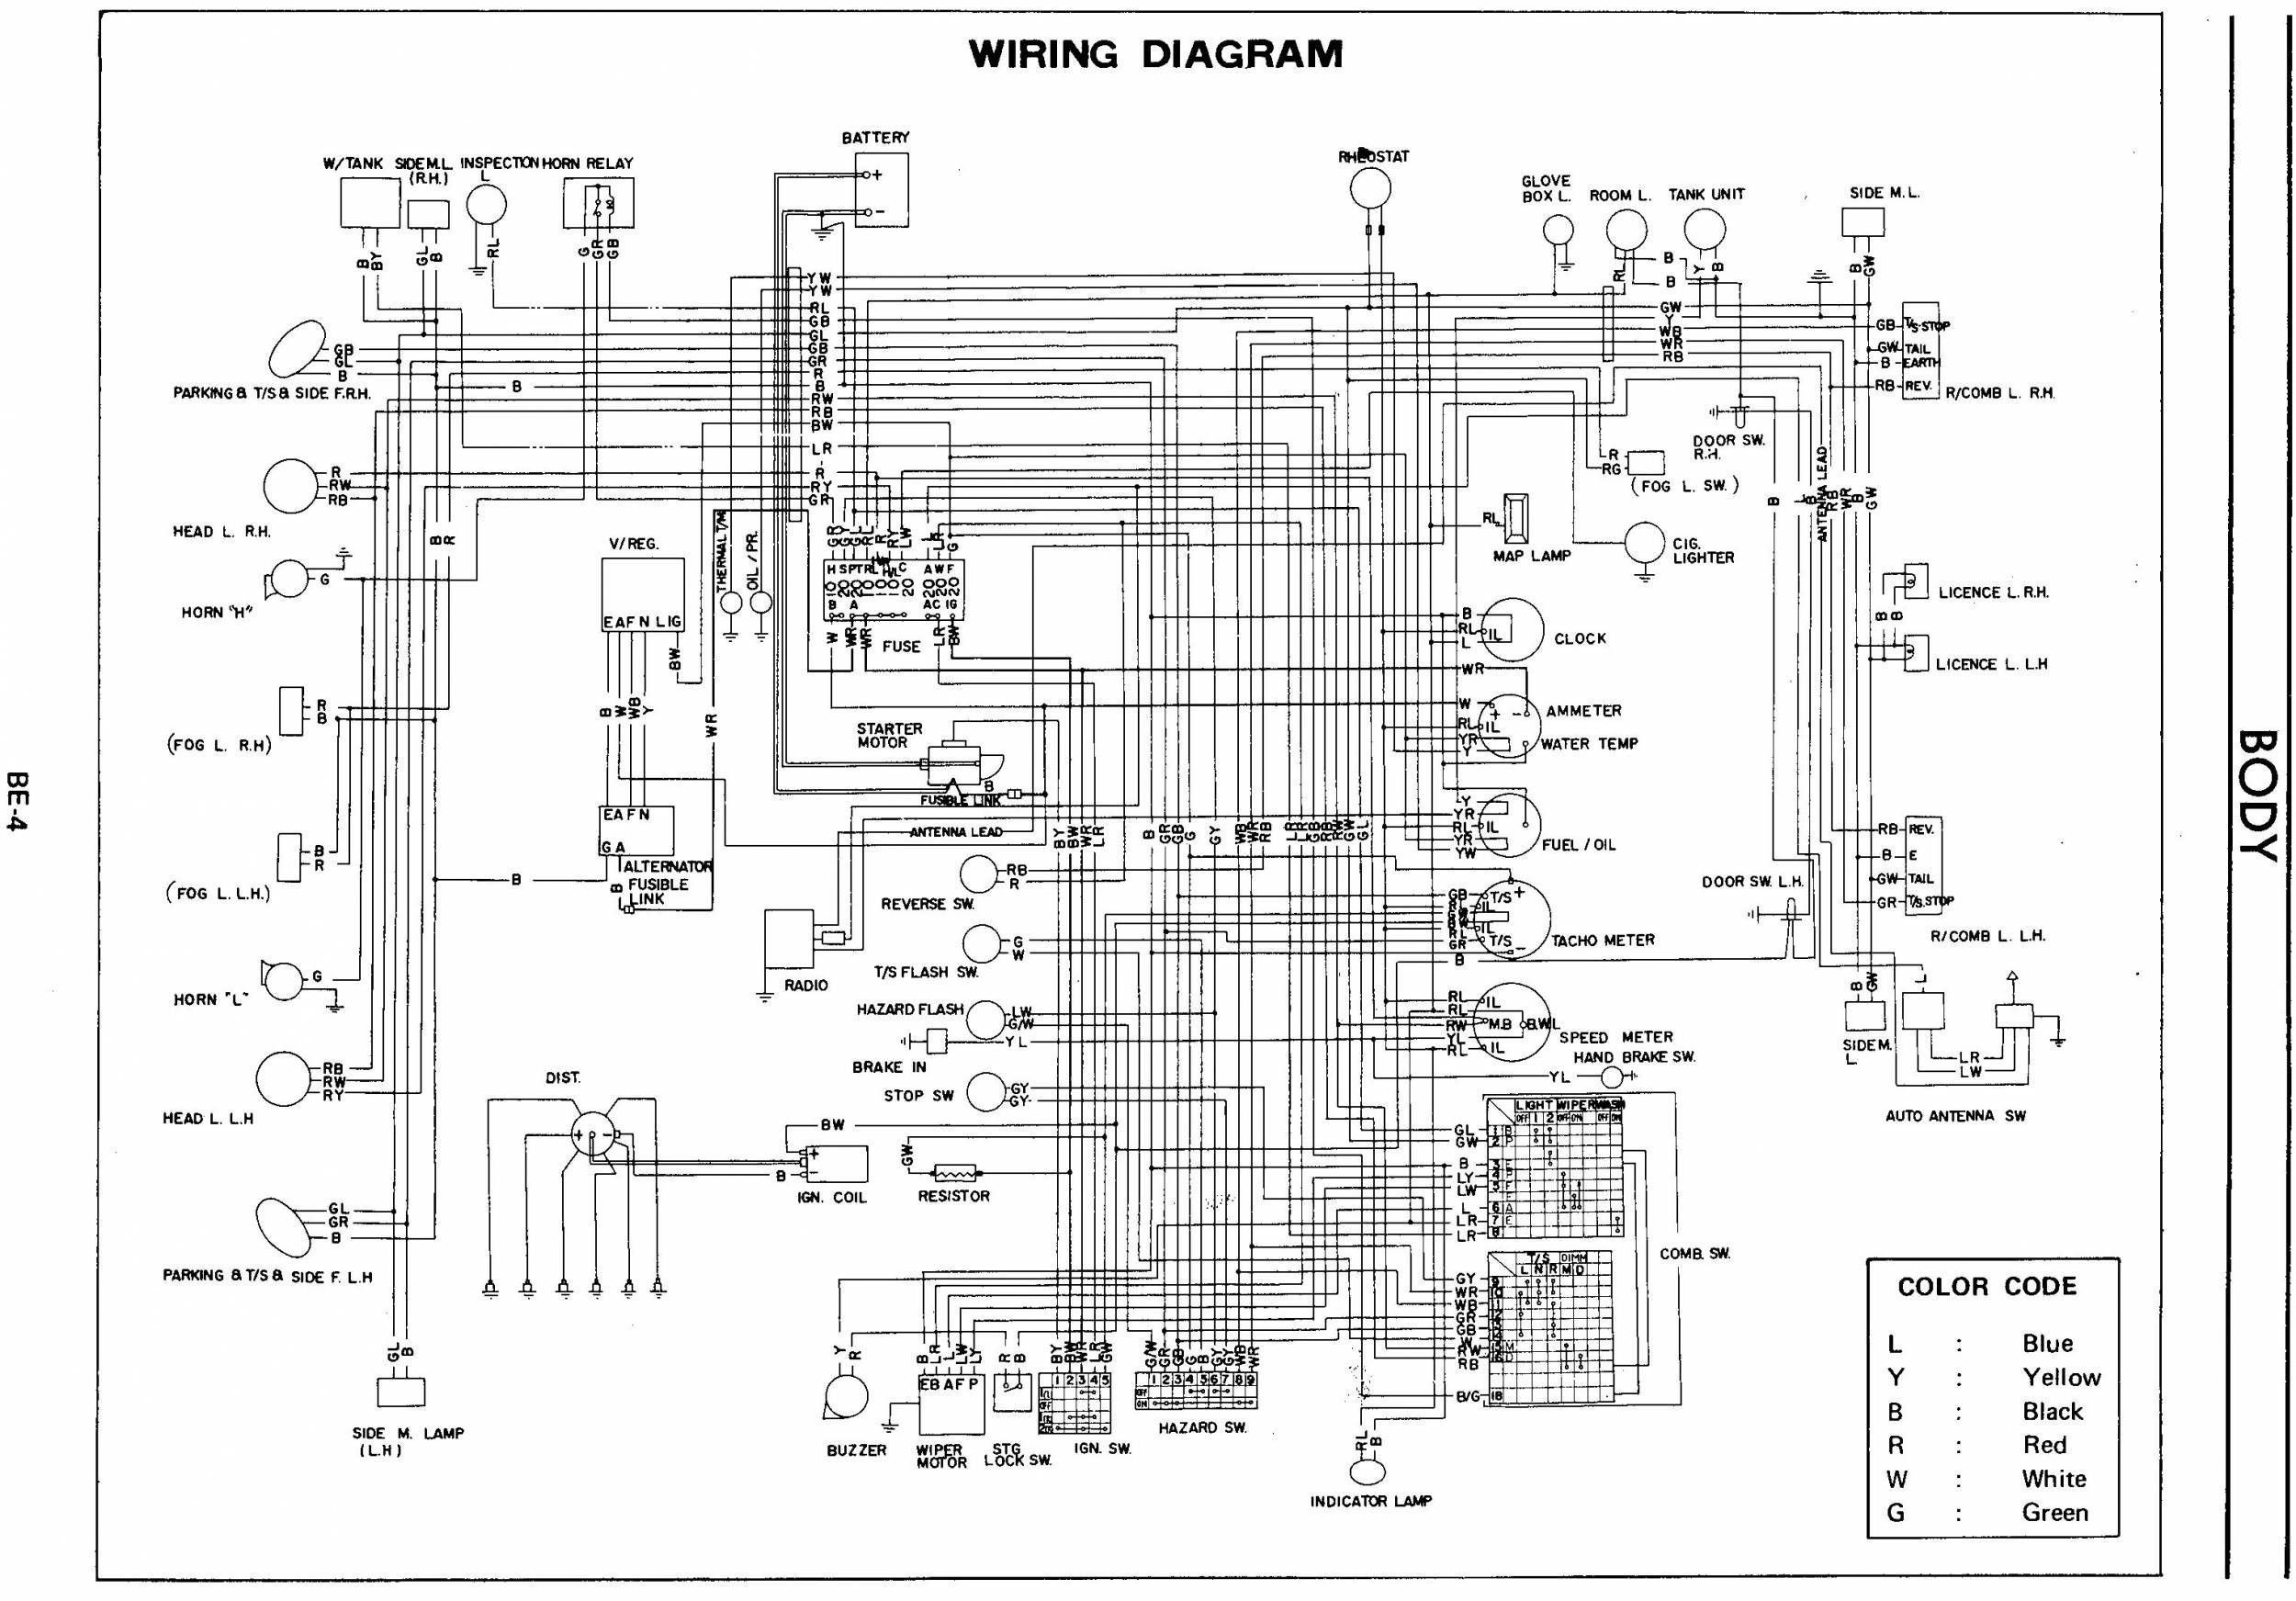 Freightliner Air Management Unit In 2021 Electrical Wiring Diagram Wiring Diagram Electrical Circuit Diagram